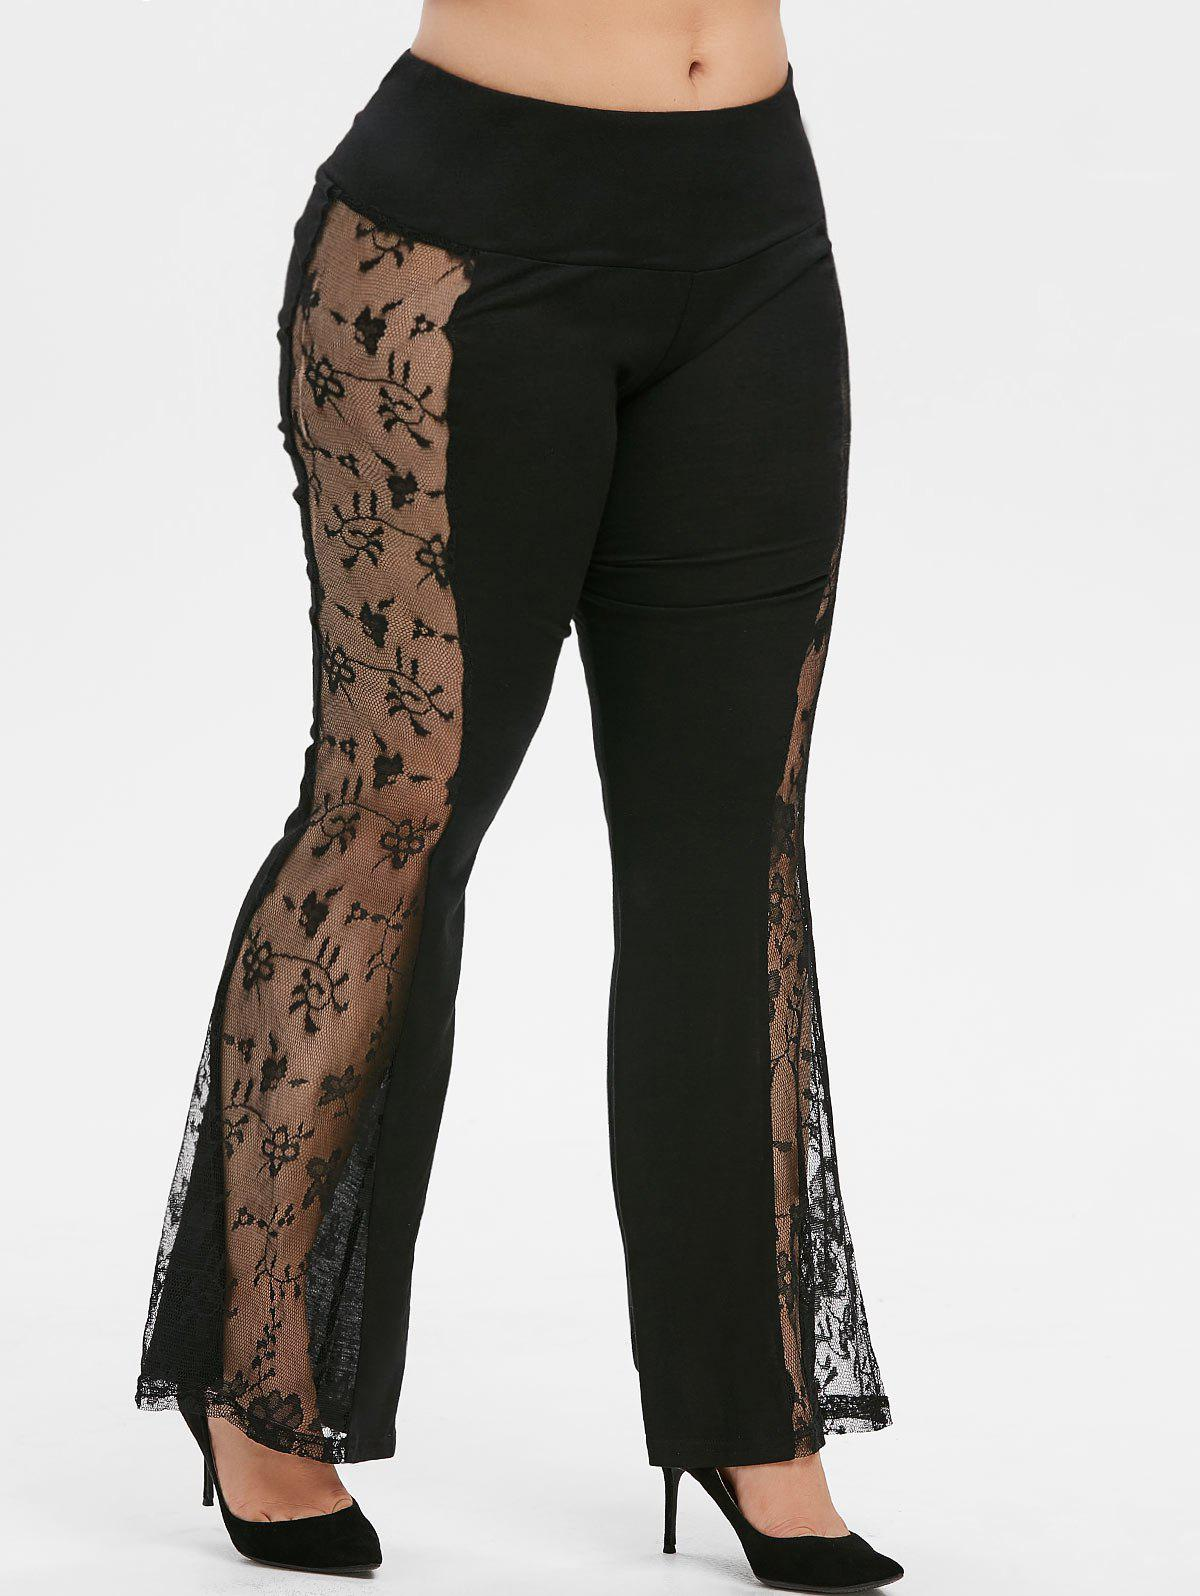 Mid Rise Lace Panel Plus Size Flare Pants - BLACK L